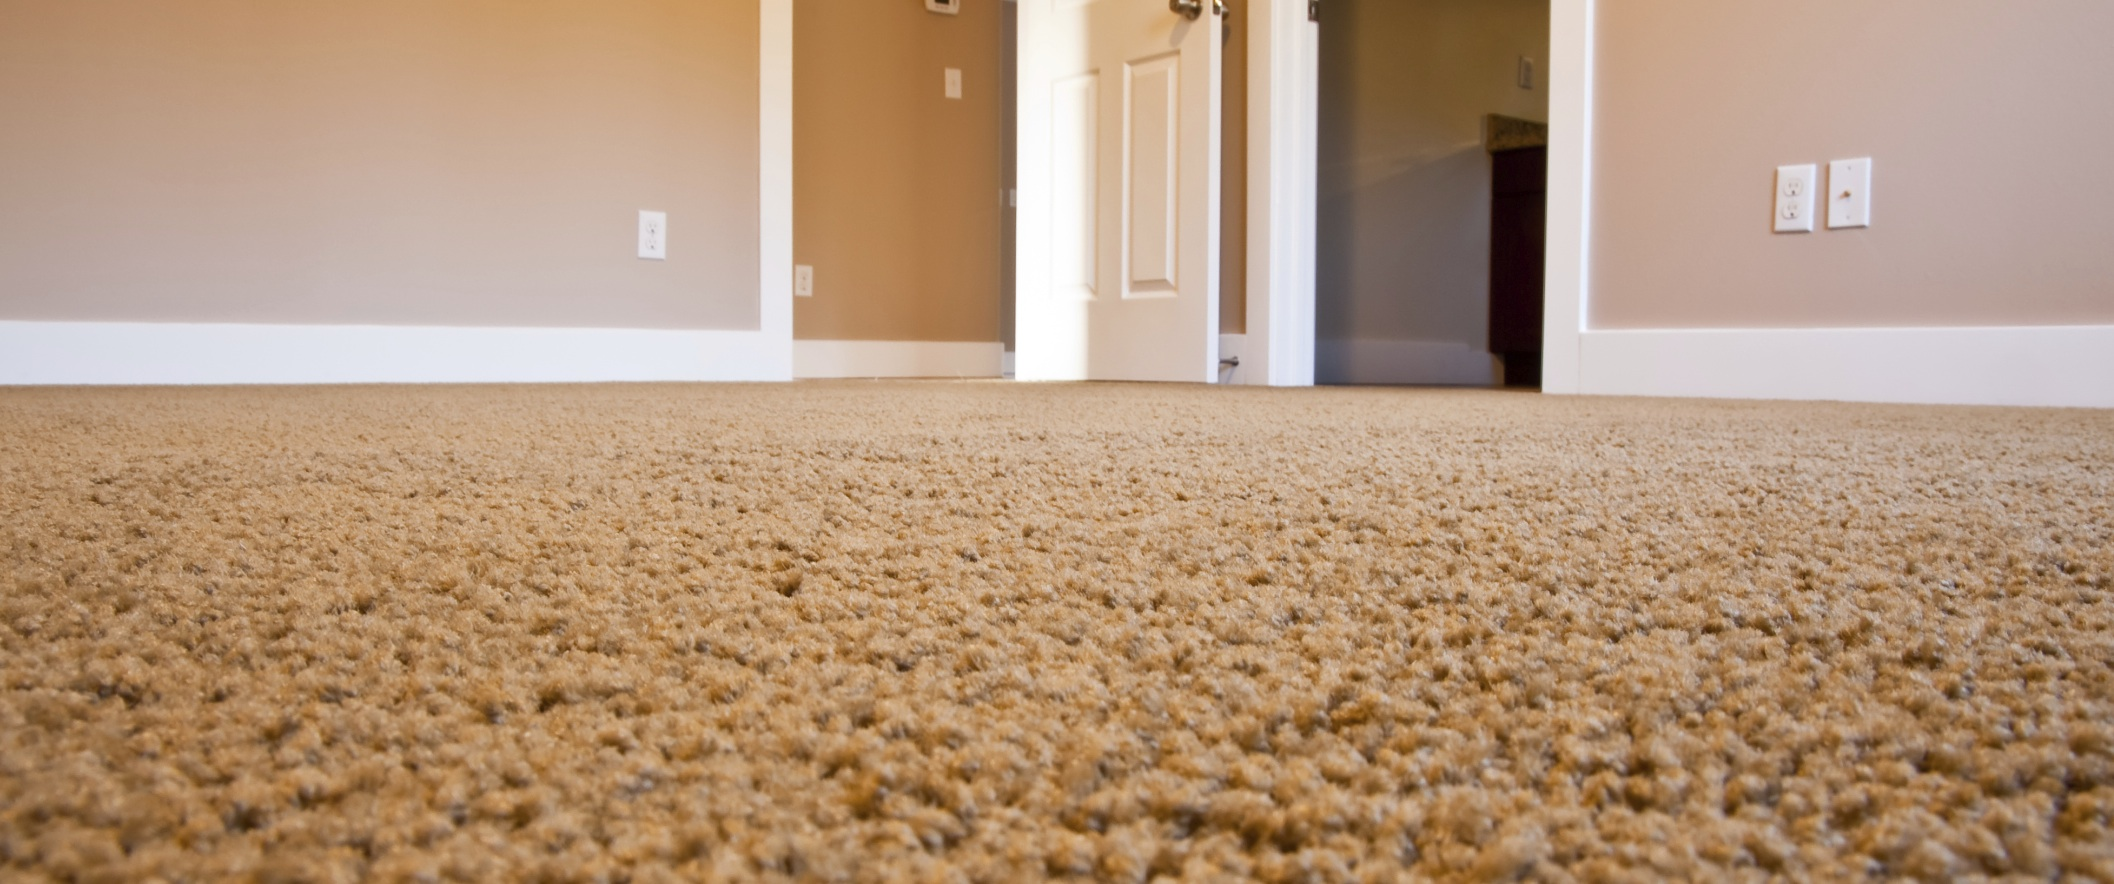 Professional Carpet Cleaning Services Hanover Pa York Pa